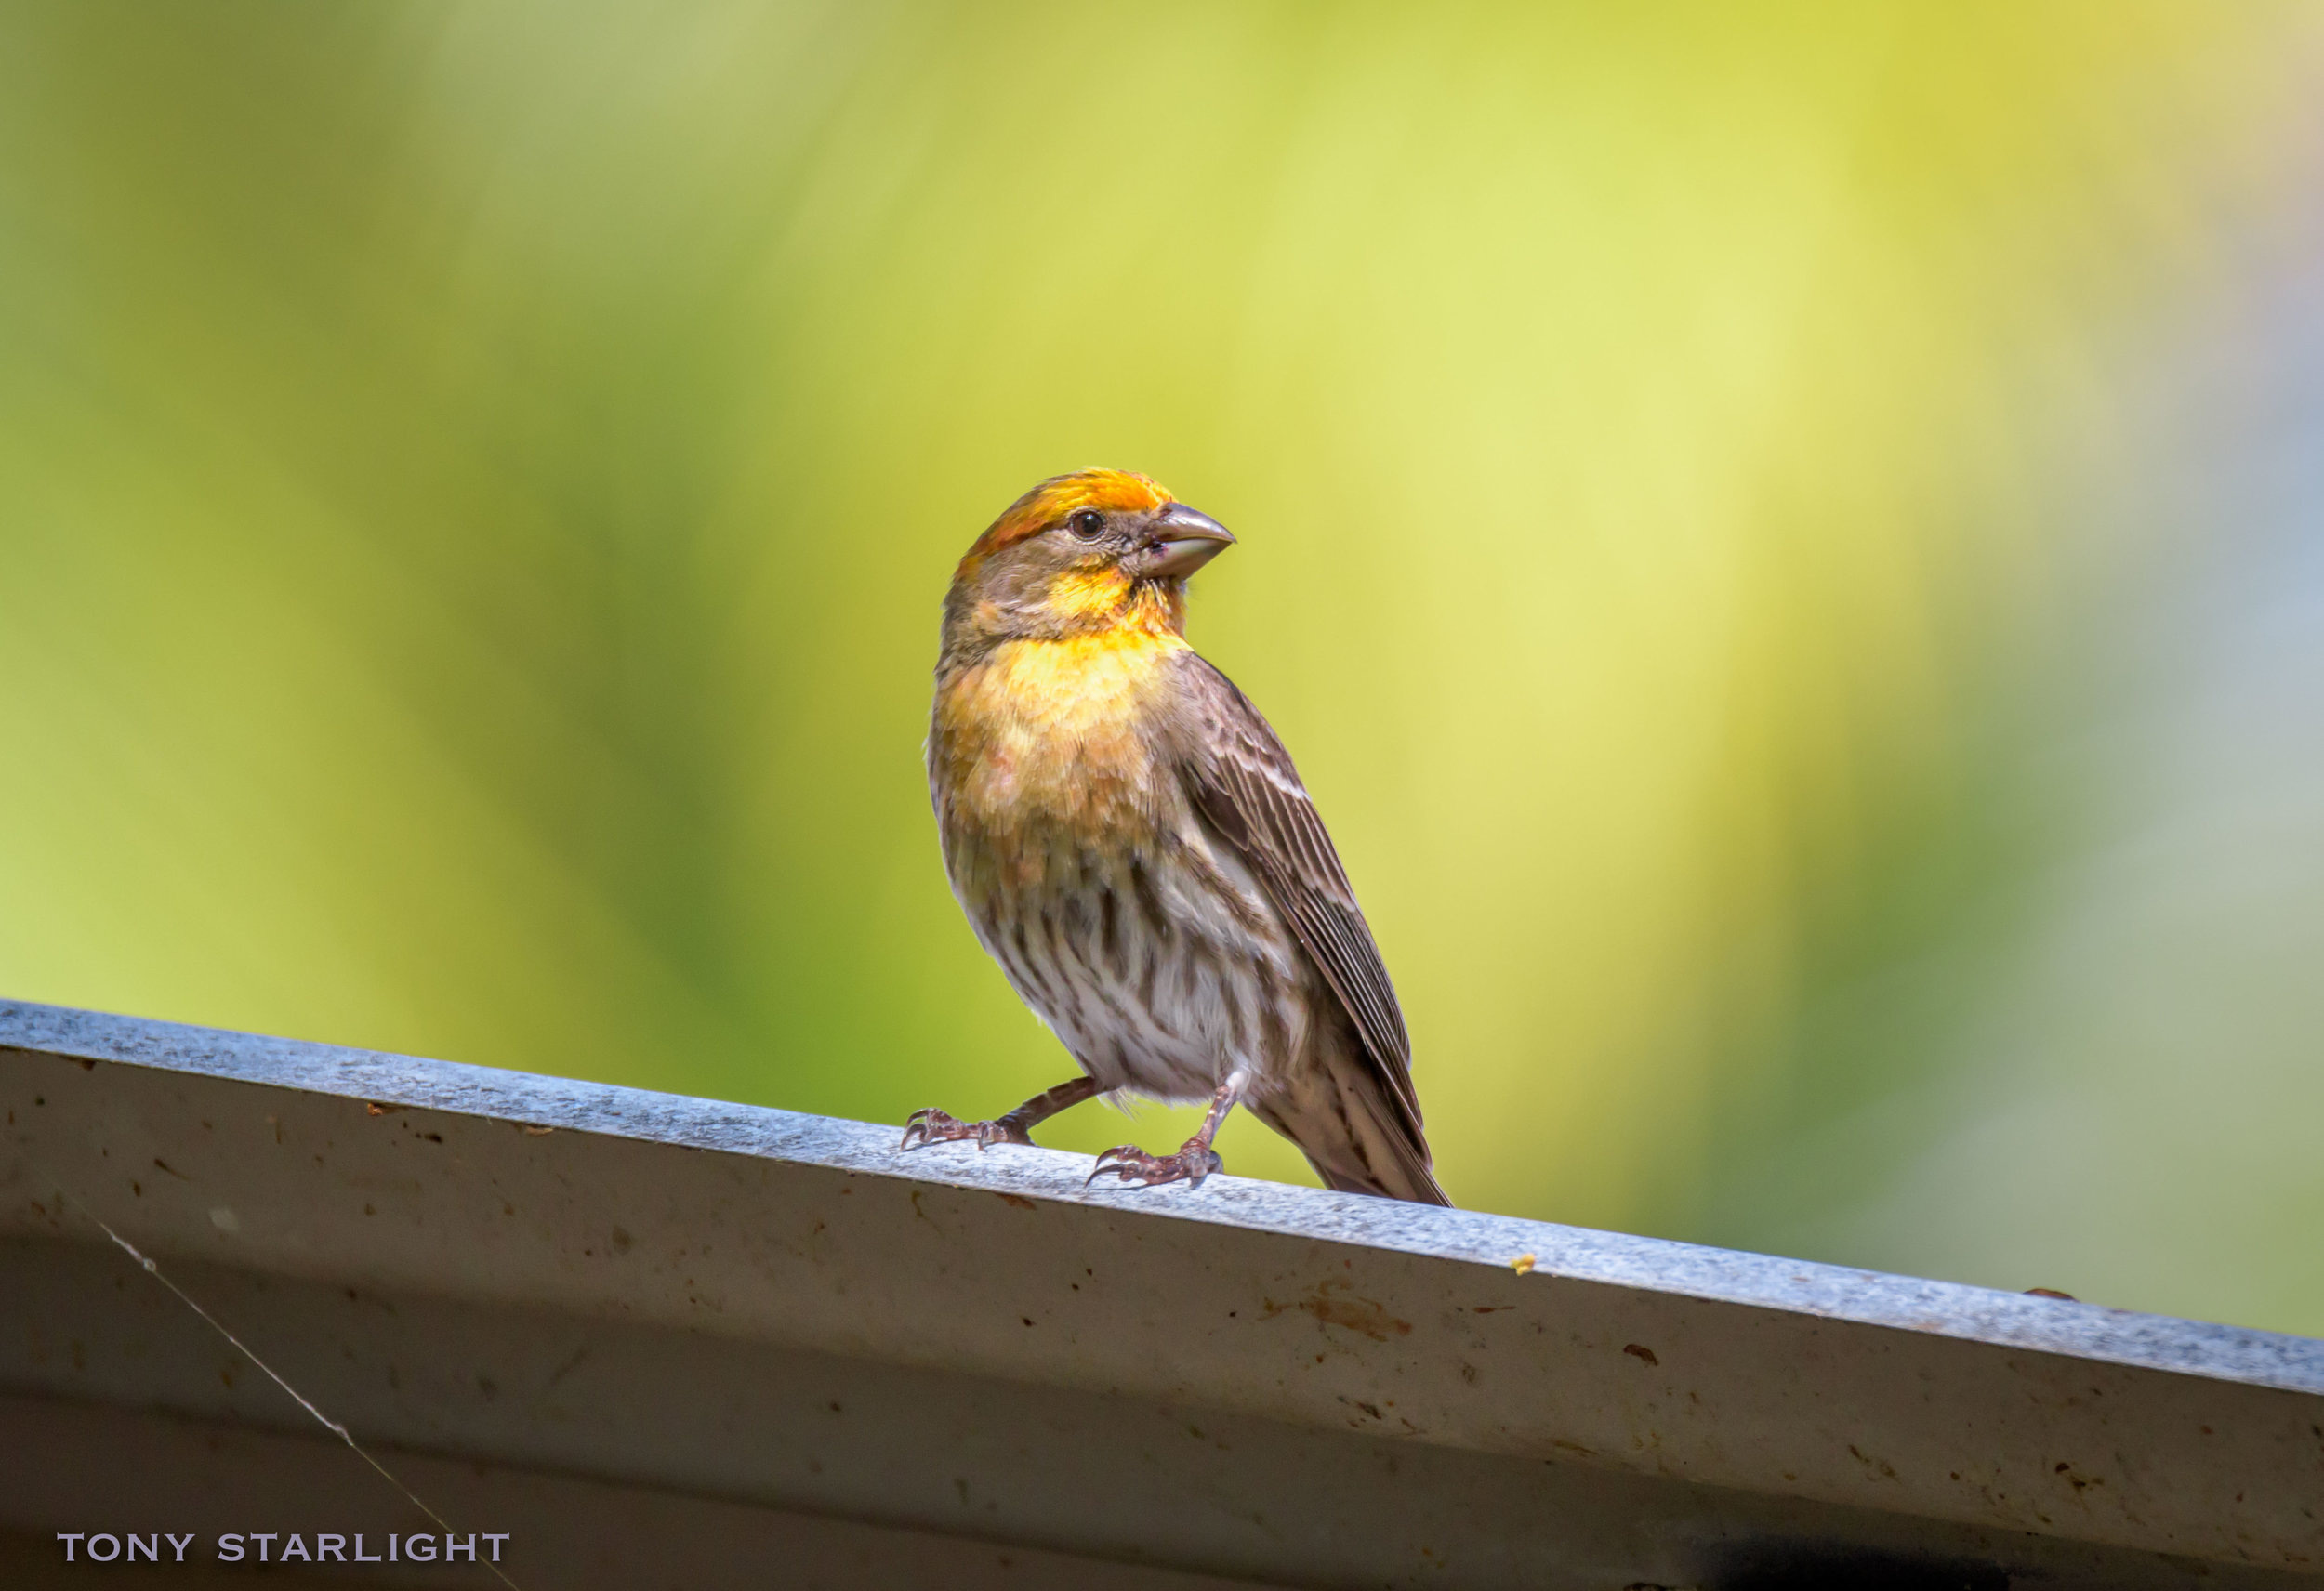 House Finch - Normally I wouldn't include such a common bird from home, but he posed so beautifully in the light and at just the perfect angle, and basically demanded inclusion in this photo journal. His diet induced yellow coloration is different from the red we see in the Pacific Northwest. After seeing him, I avoided eating Pupus and Loco Moco for fear of turning yellow myself. (Although I somehow returned from Hawaii with an obvious pink hue.)